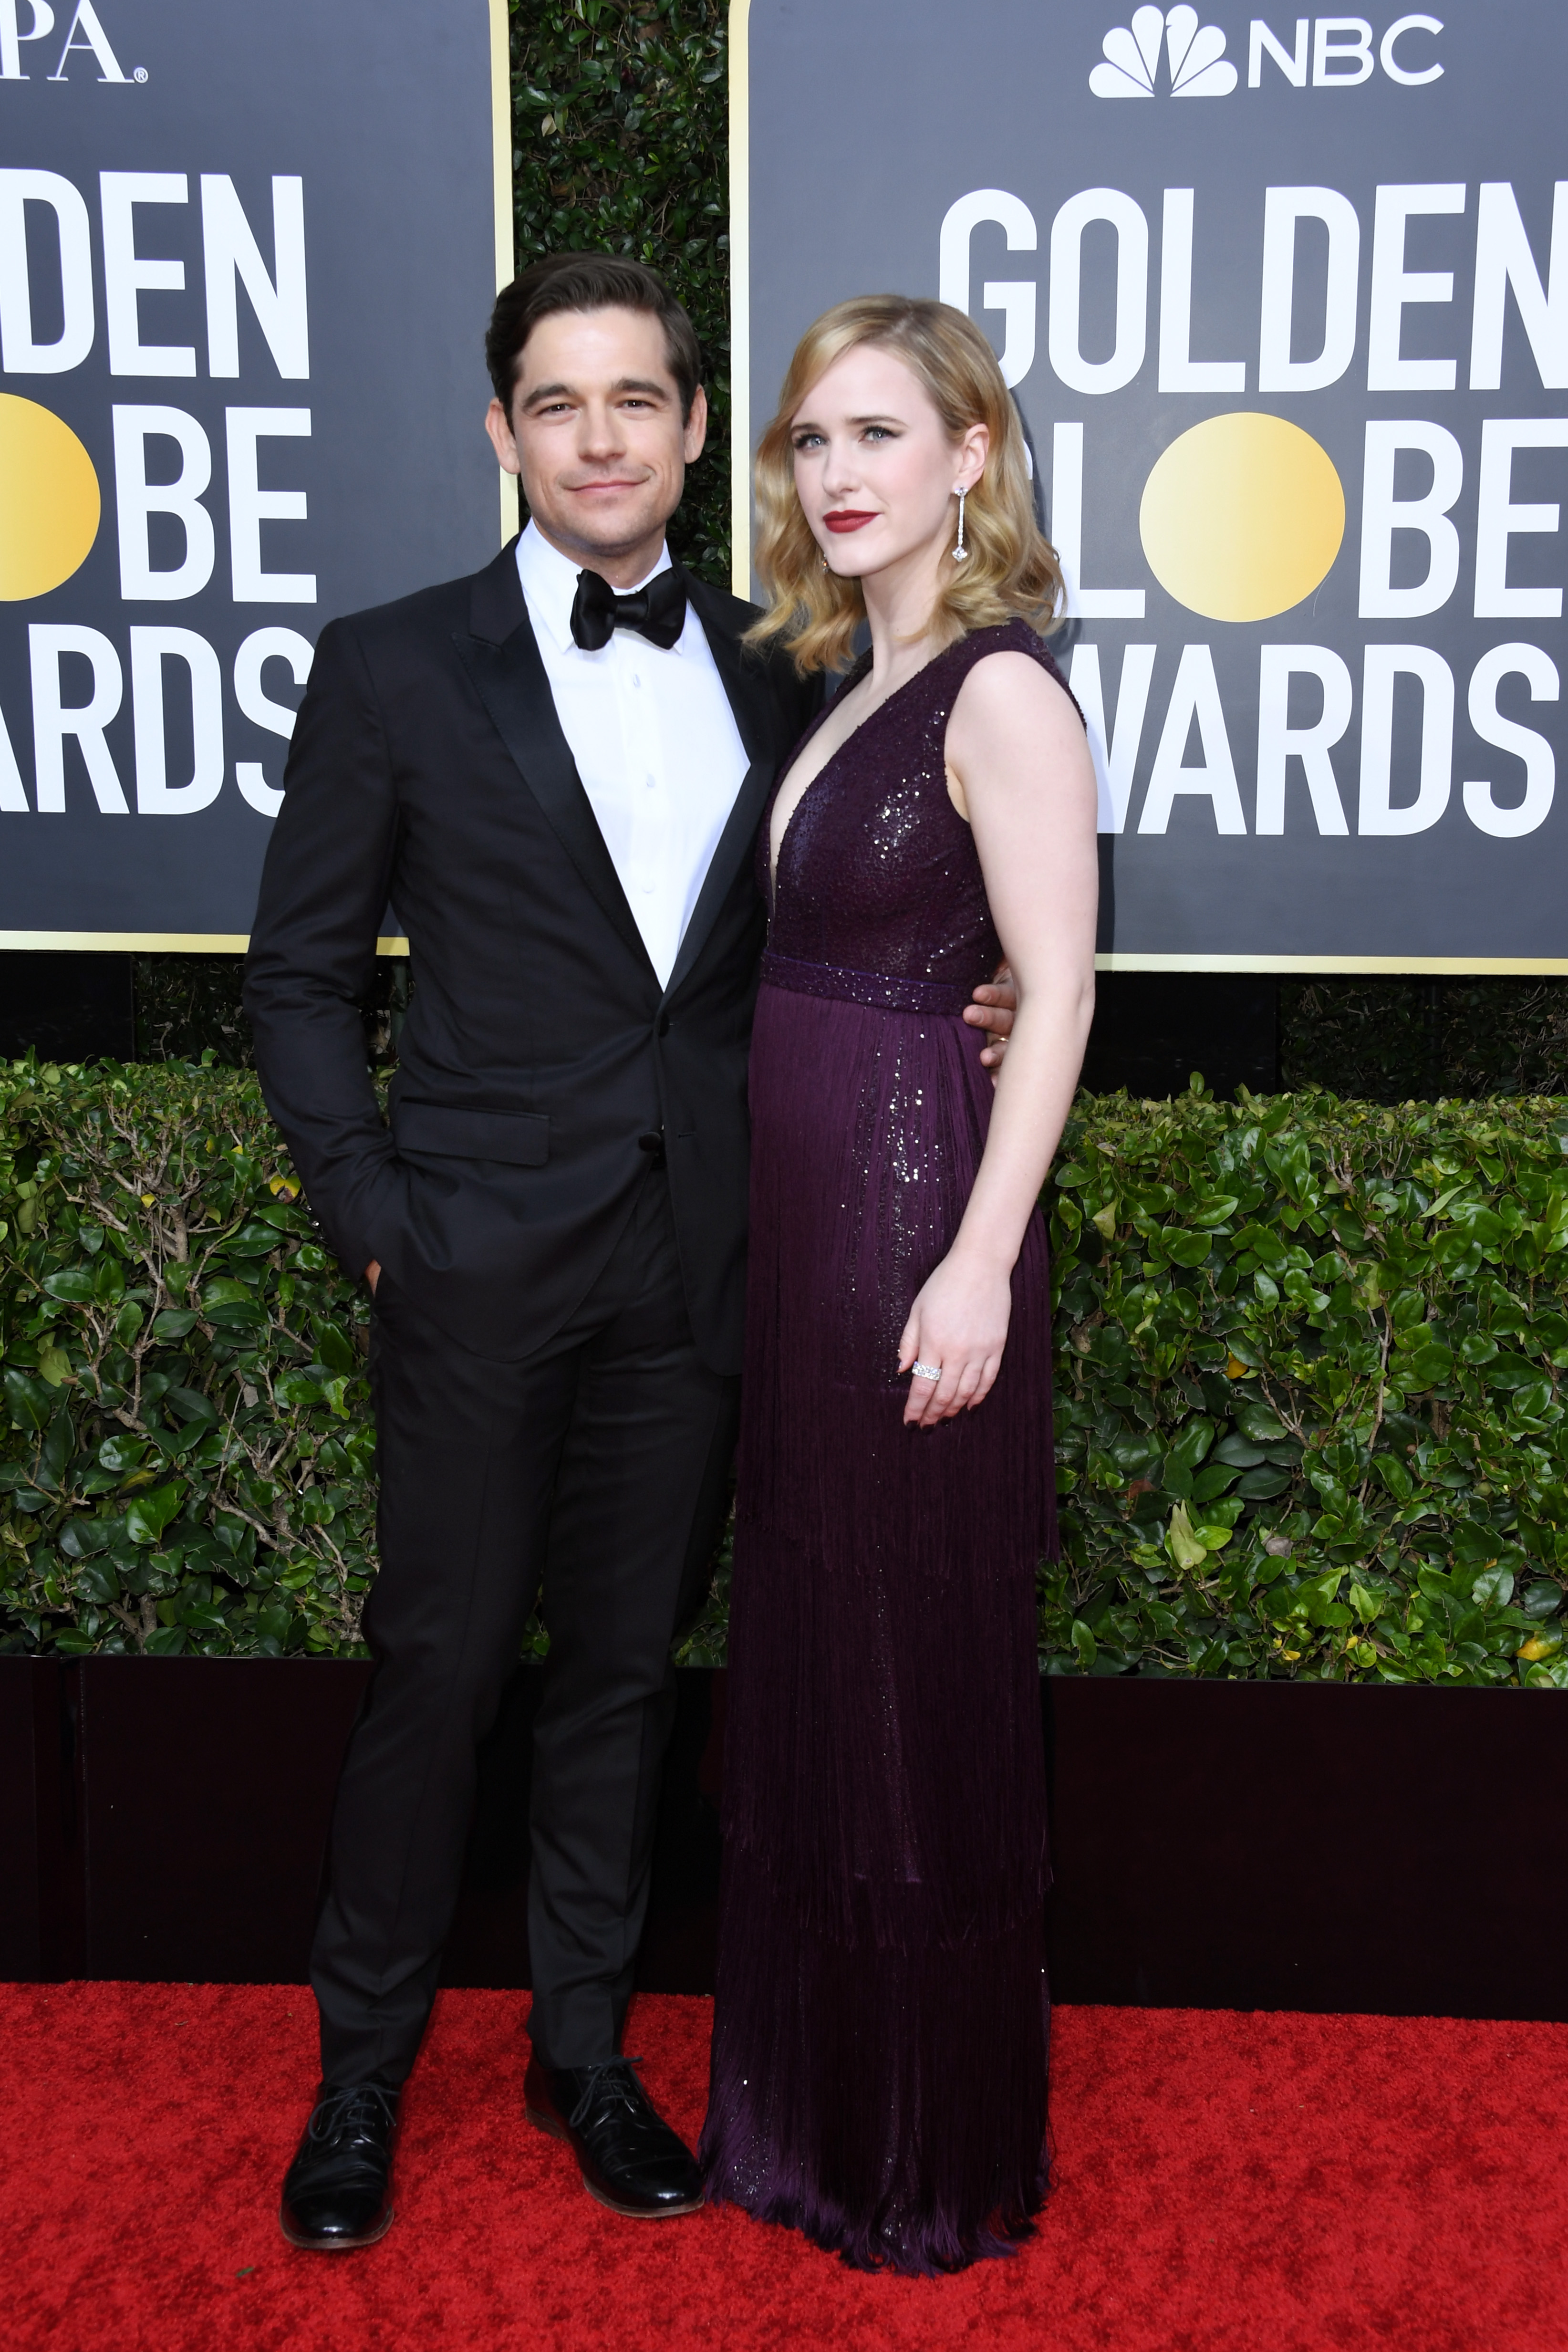 BEVERLY HILLS, CALIFORNIA - JANUARY 05: (L-R) Jason Ralph and Rachel Brosnahan attend the 77th Annual Golden Globe Awards at The Beverly Hilton Hotel on January 05, 2020 in Beverly Hills, California. (Photo by Jon Kopaloff/Getty Images)